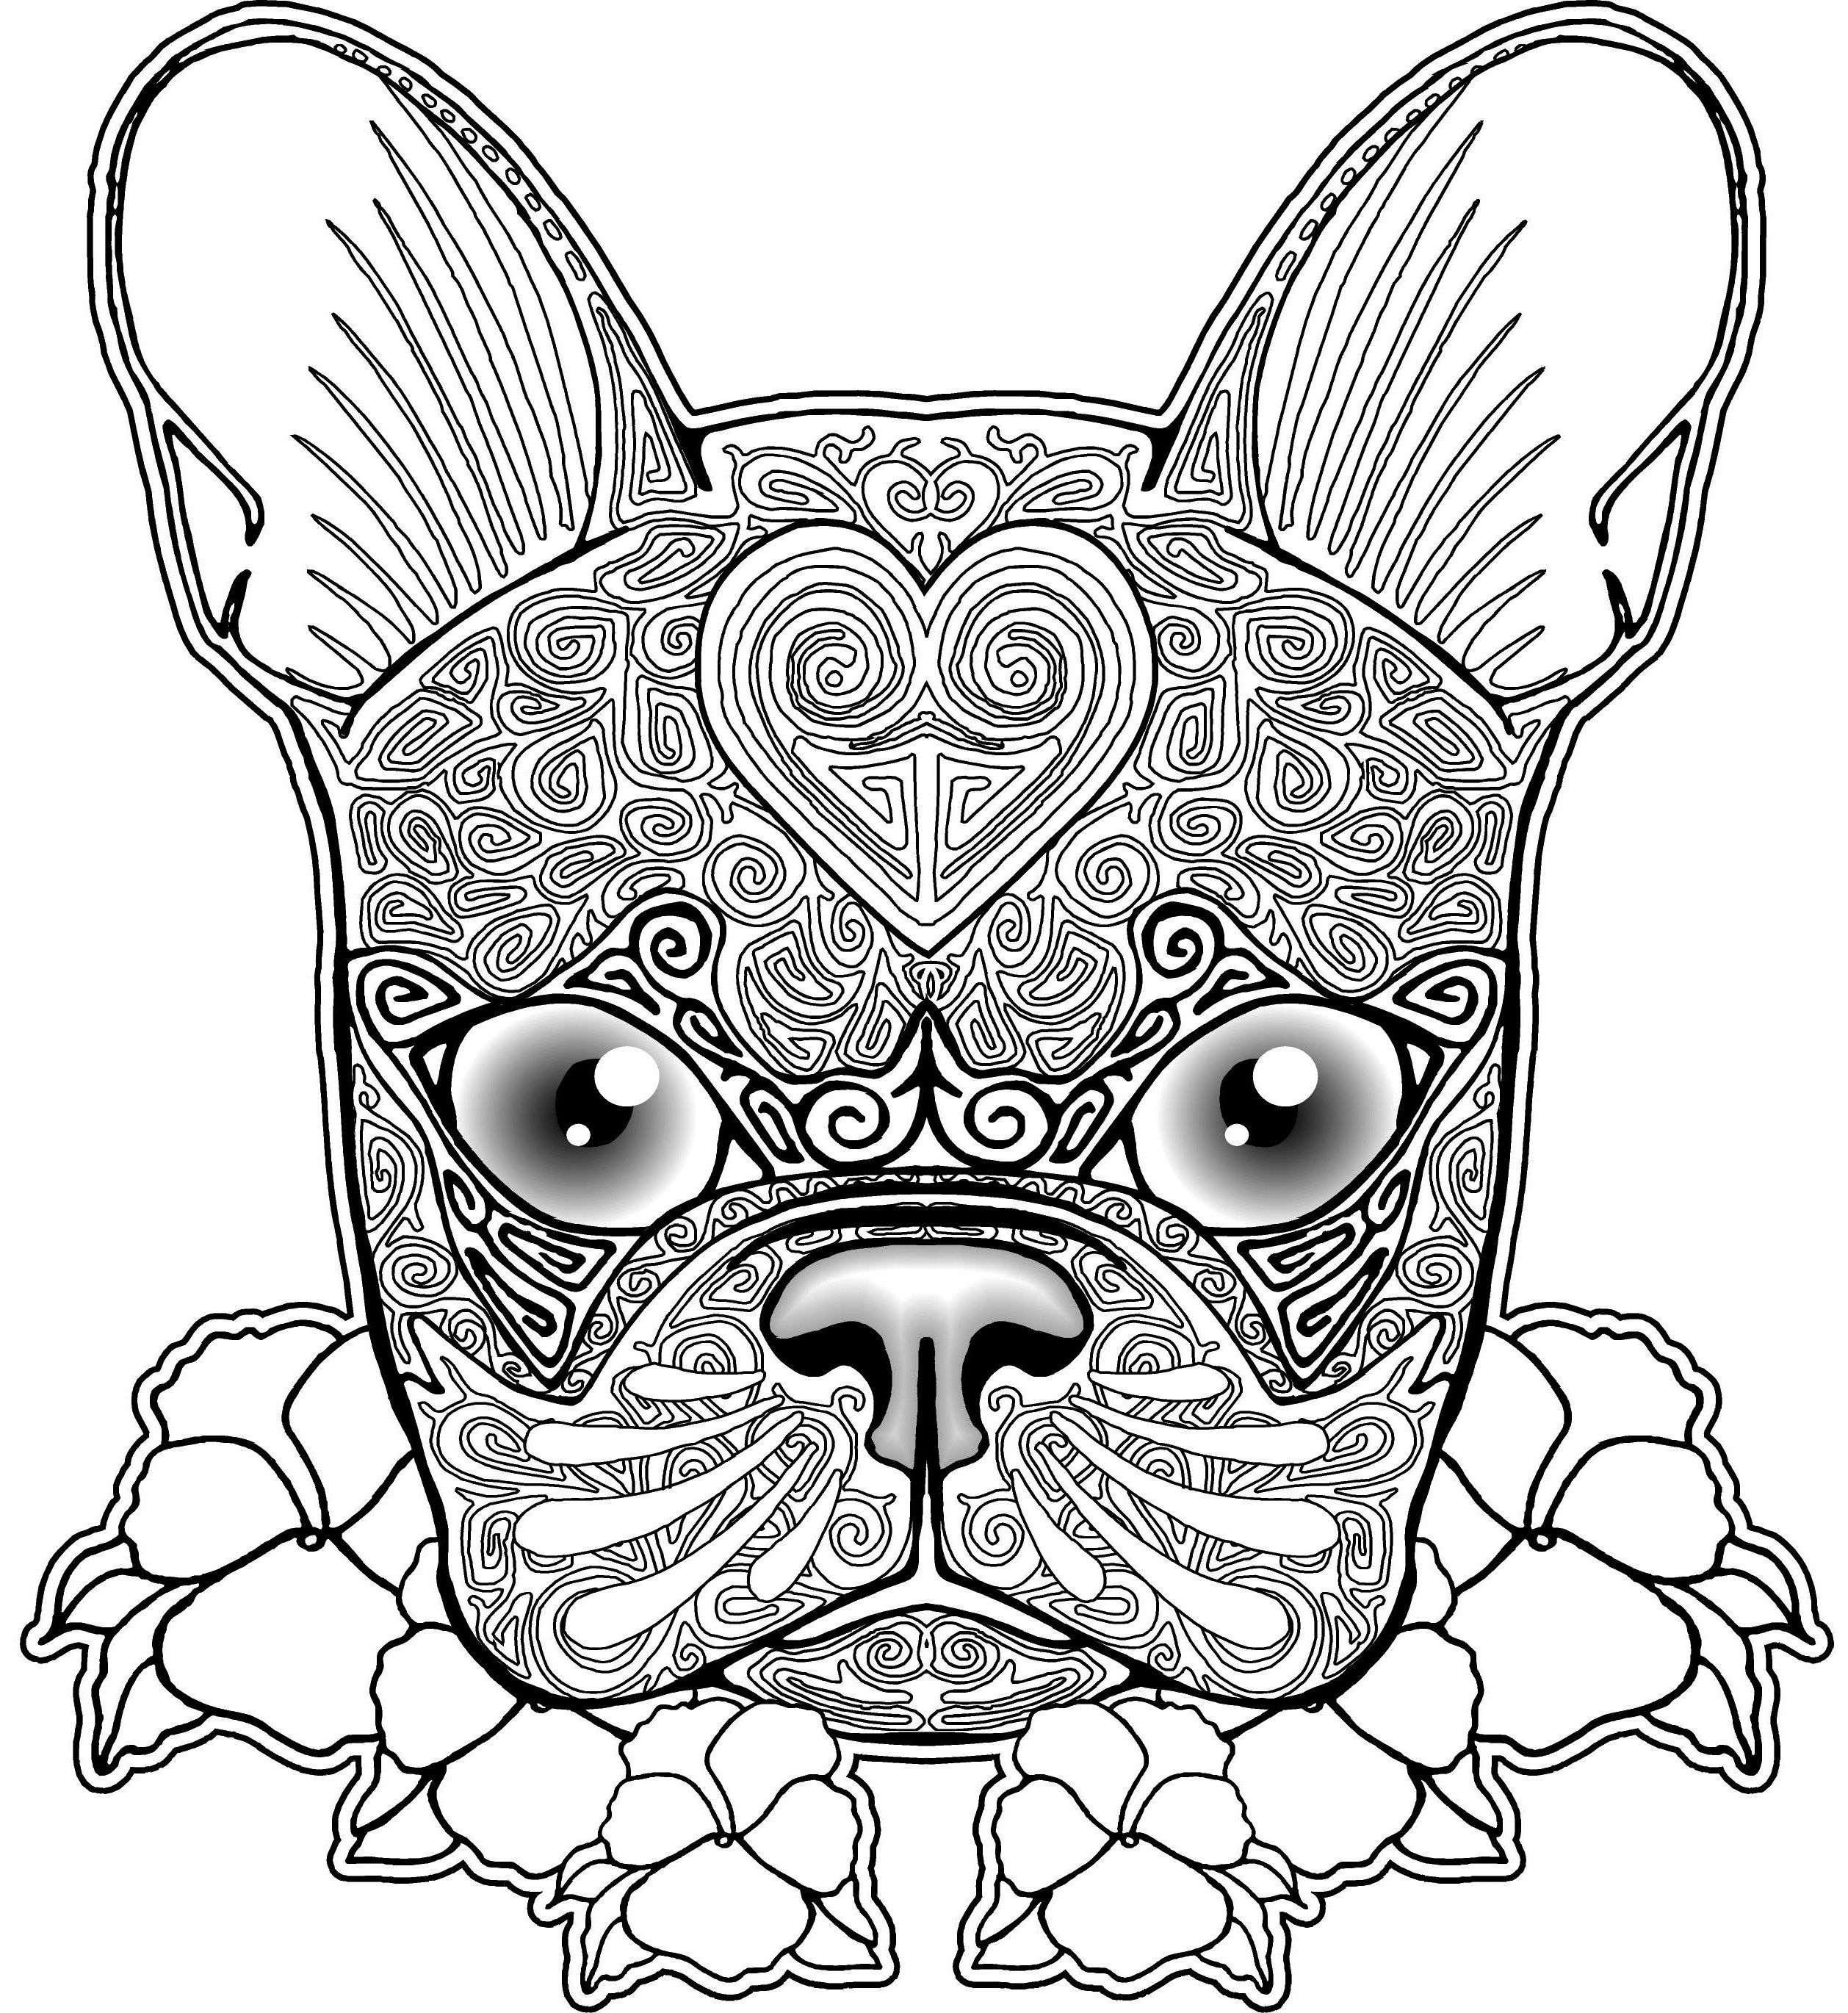 free bulldog zentangle coloring page for adults coloring